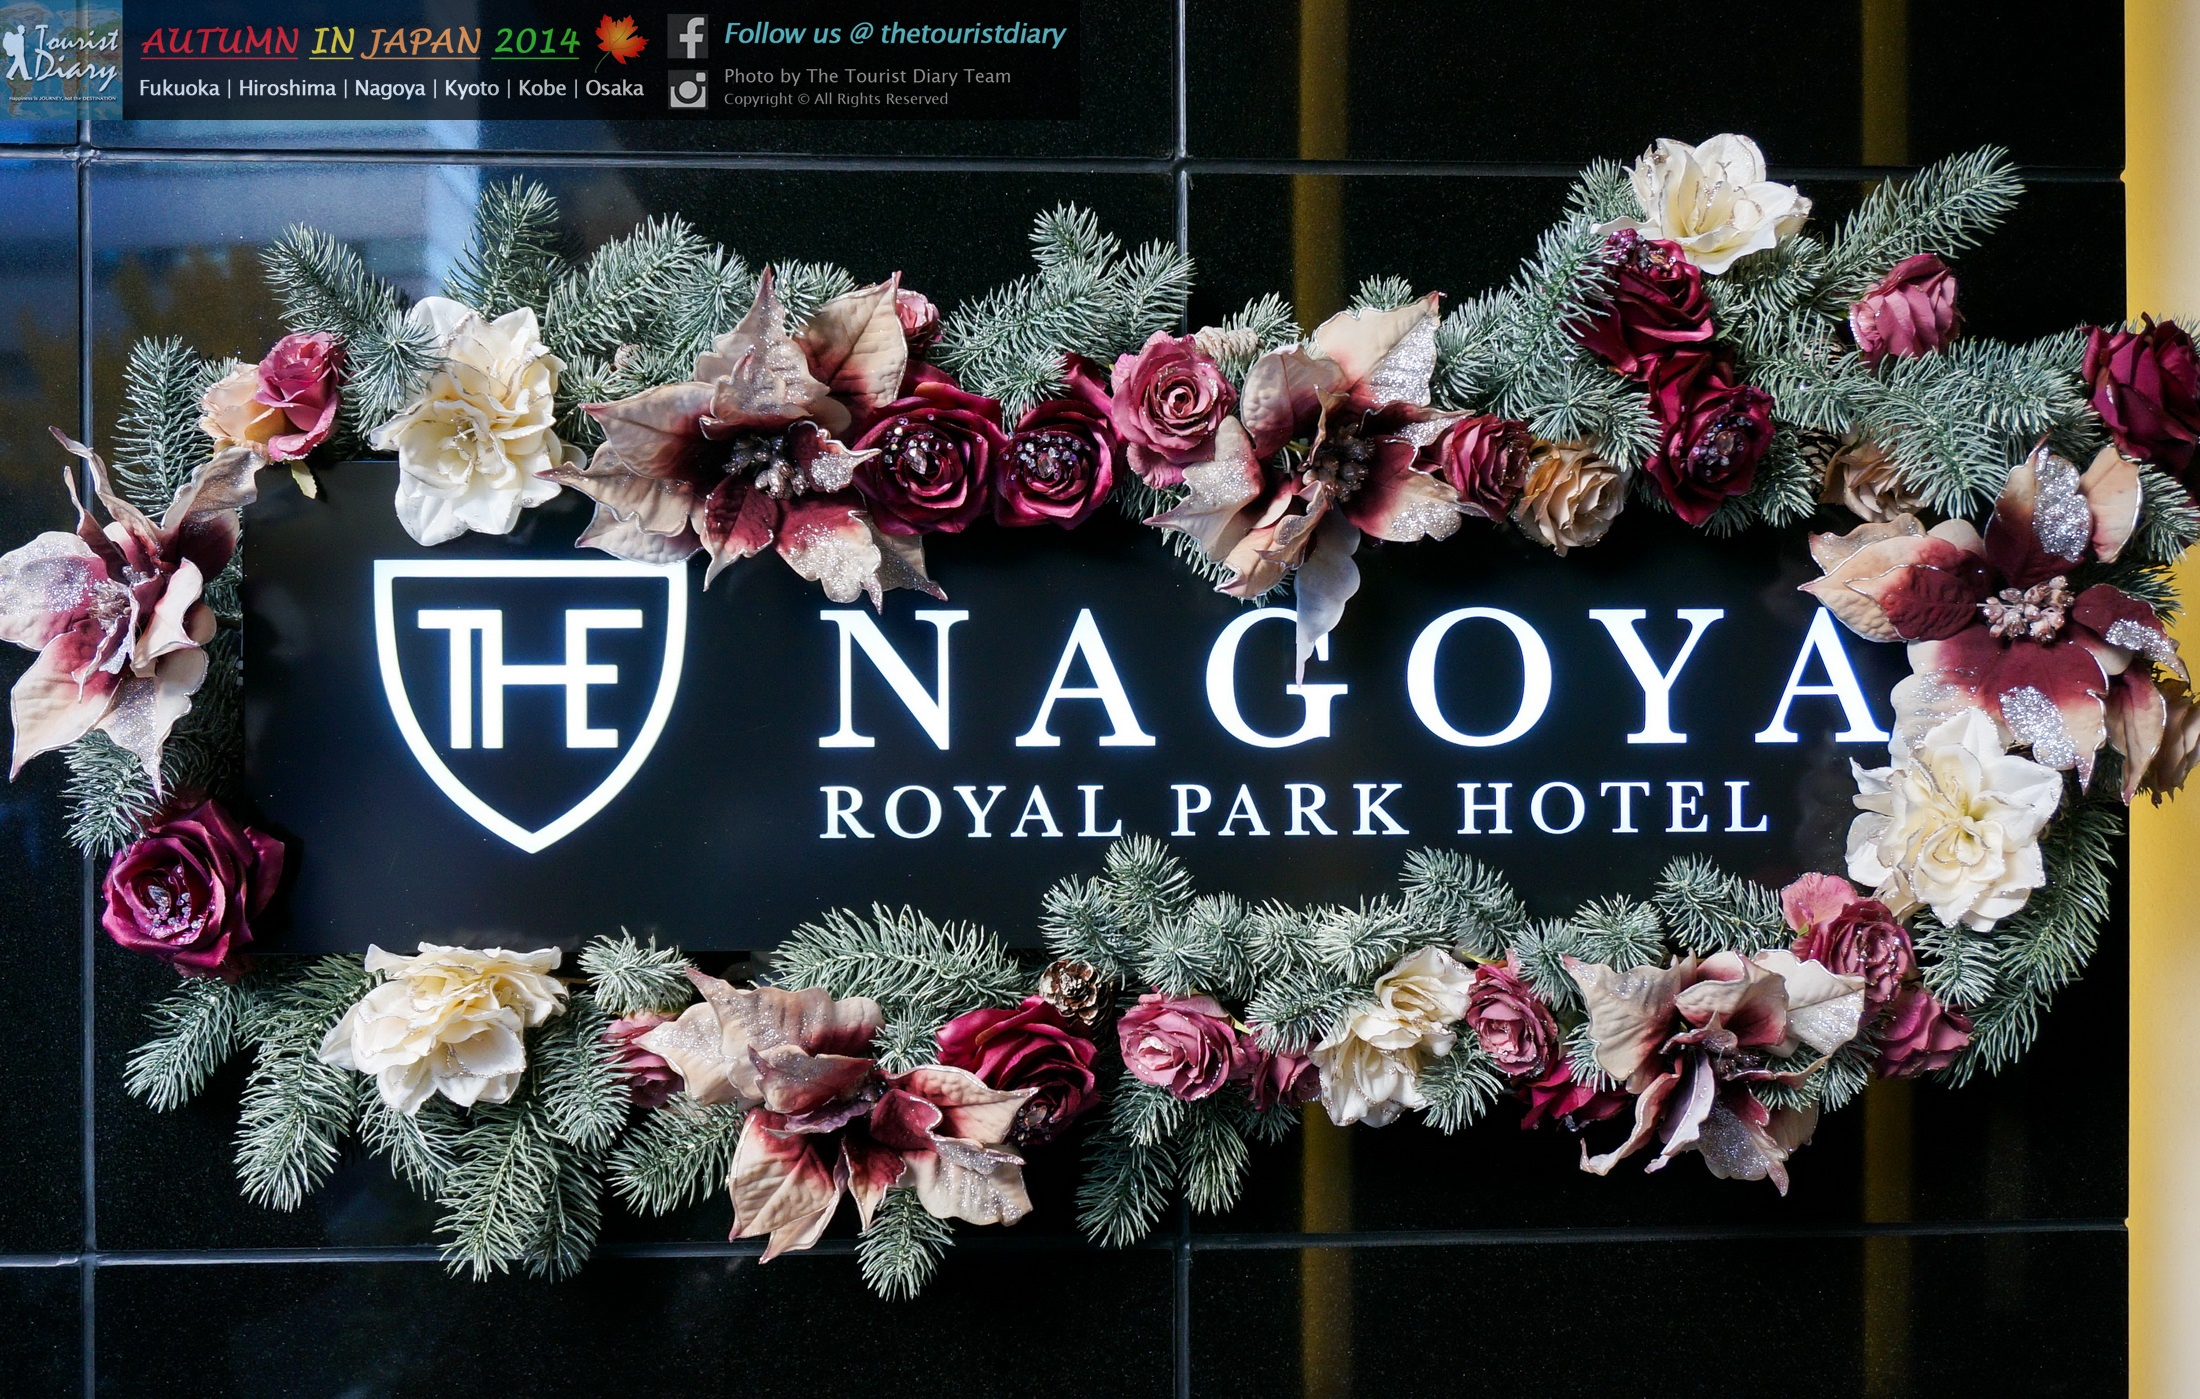 Nagoya | Royal Park Hotel The Nagoya